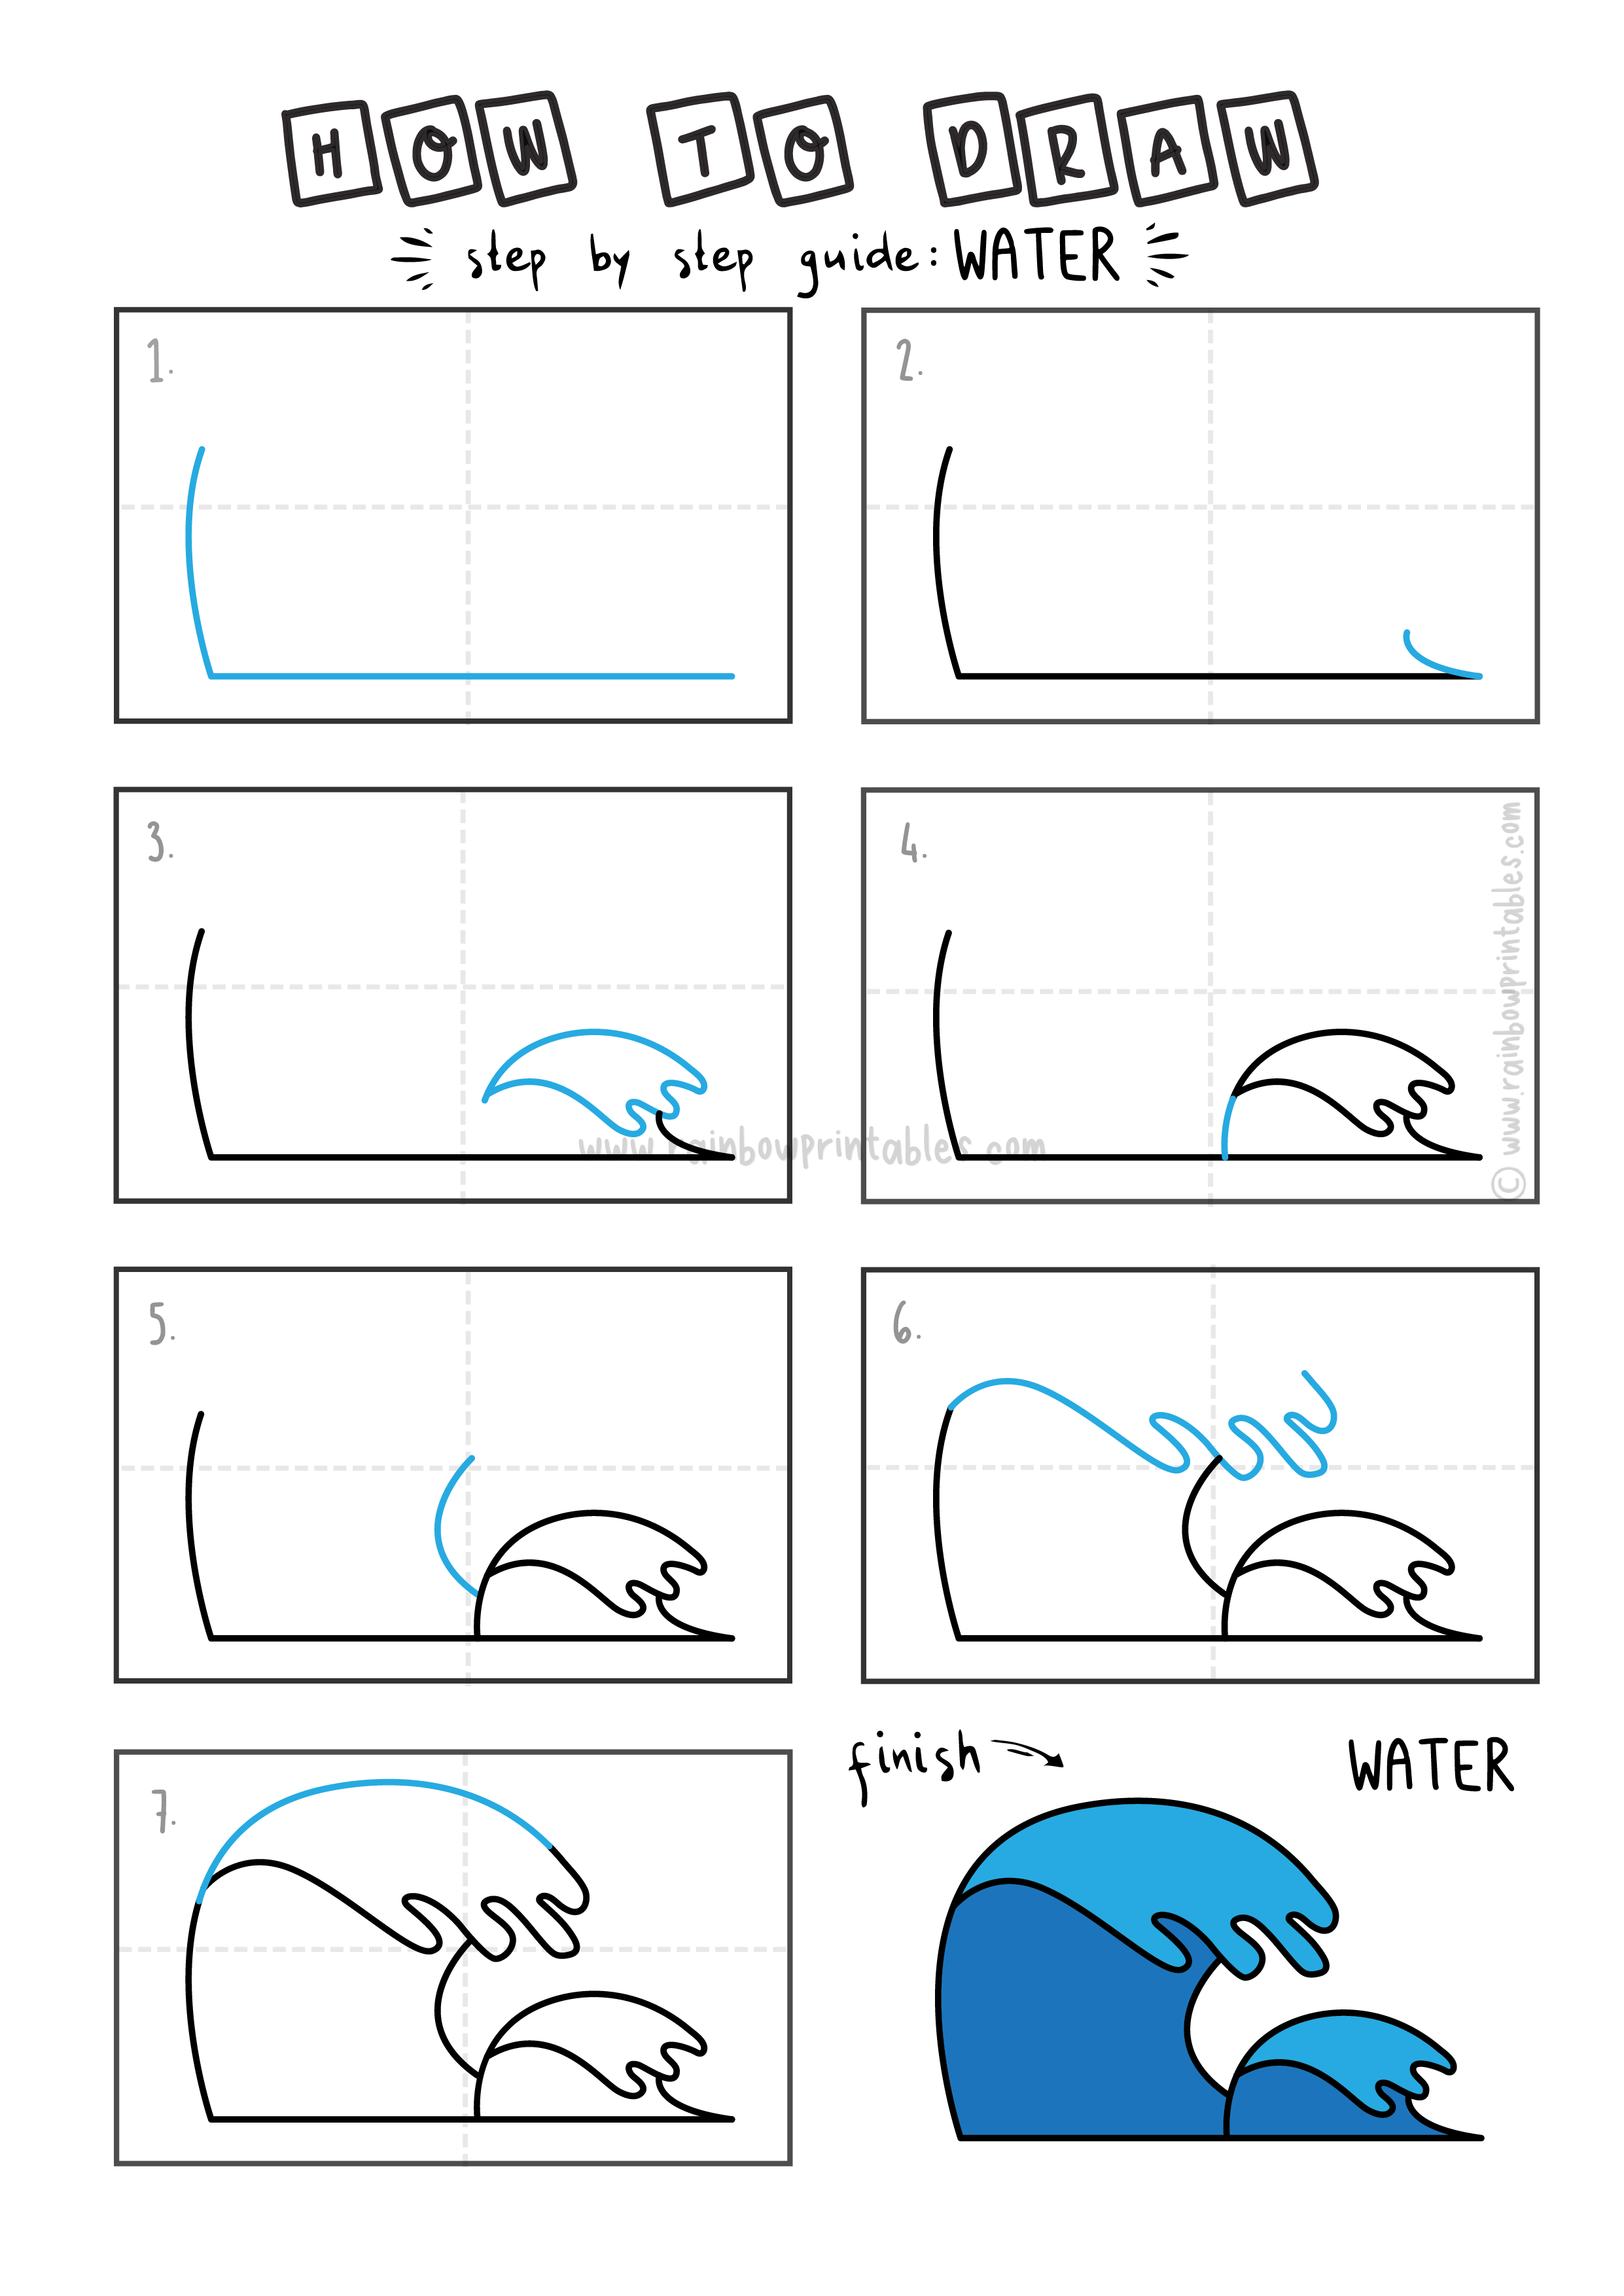 How To Draw Tutorials For Kids Ocean Waves Water Step By Step Guide